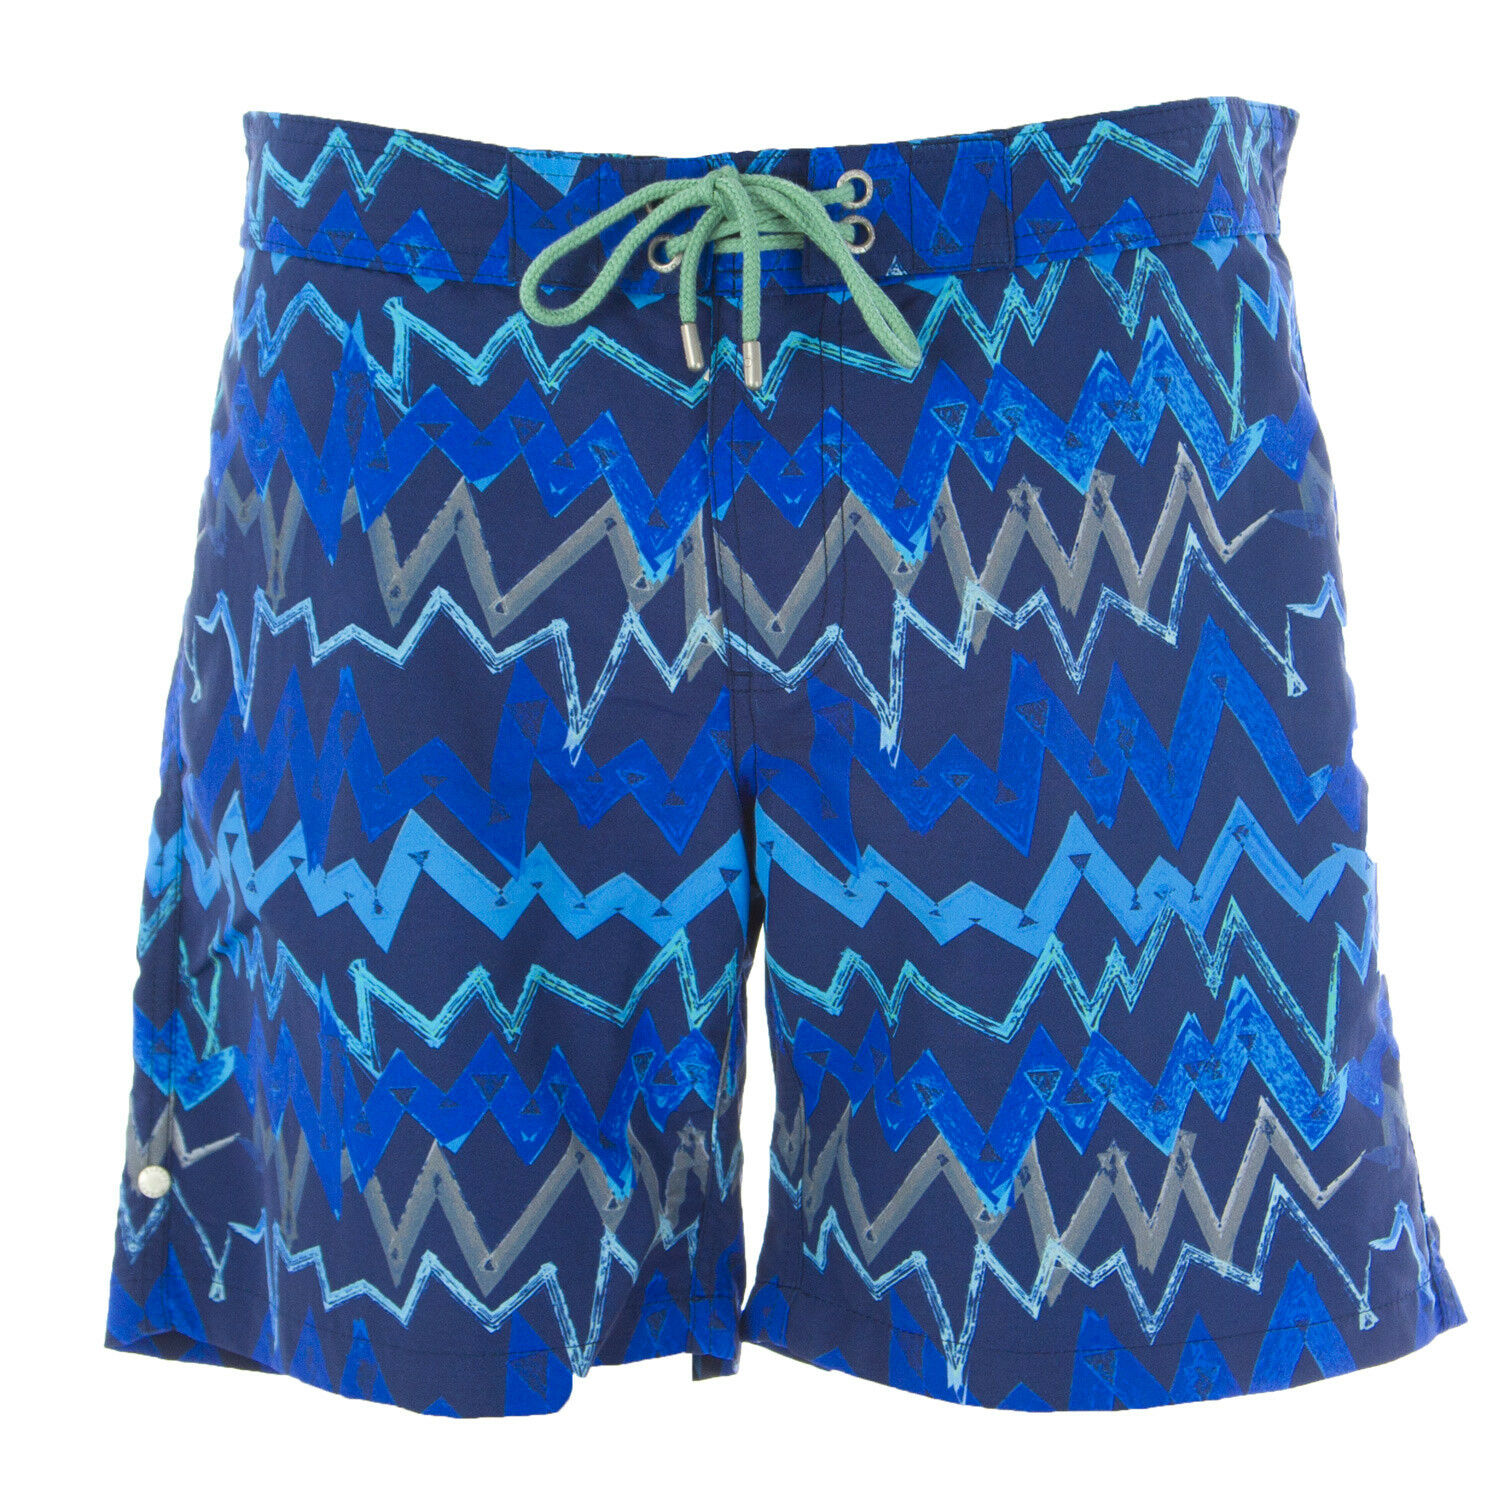 OLASUL Men's bluee 8  Chevron Print Swim Trunks NEW